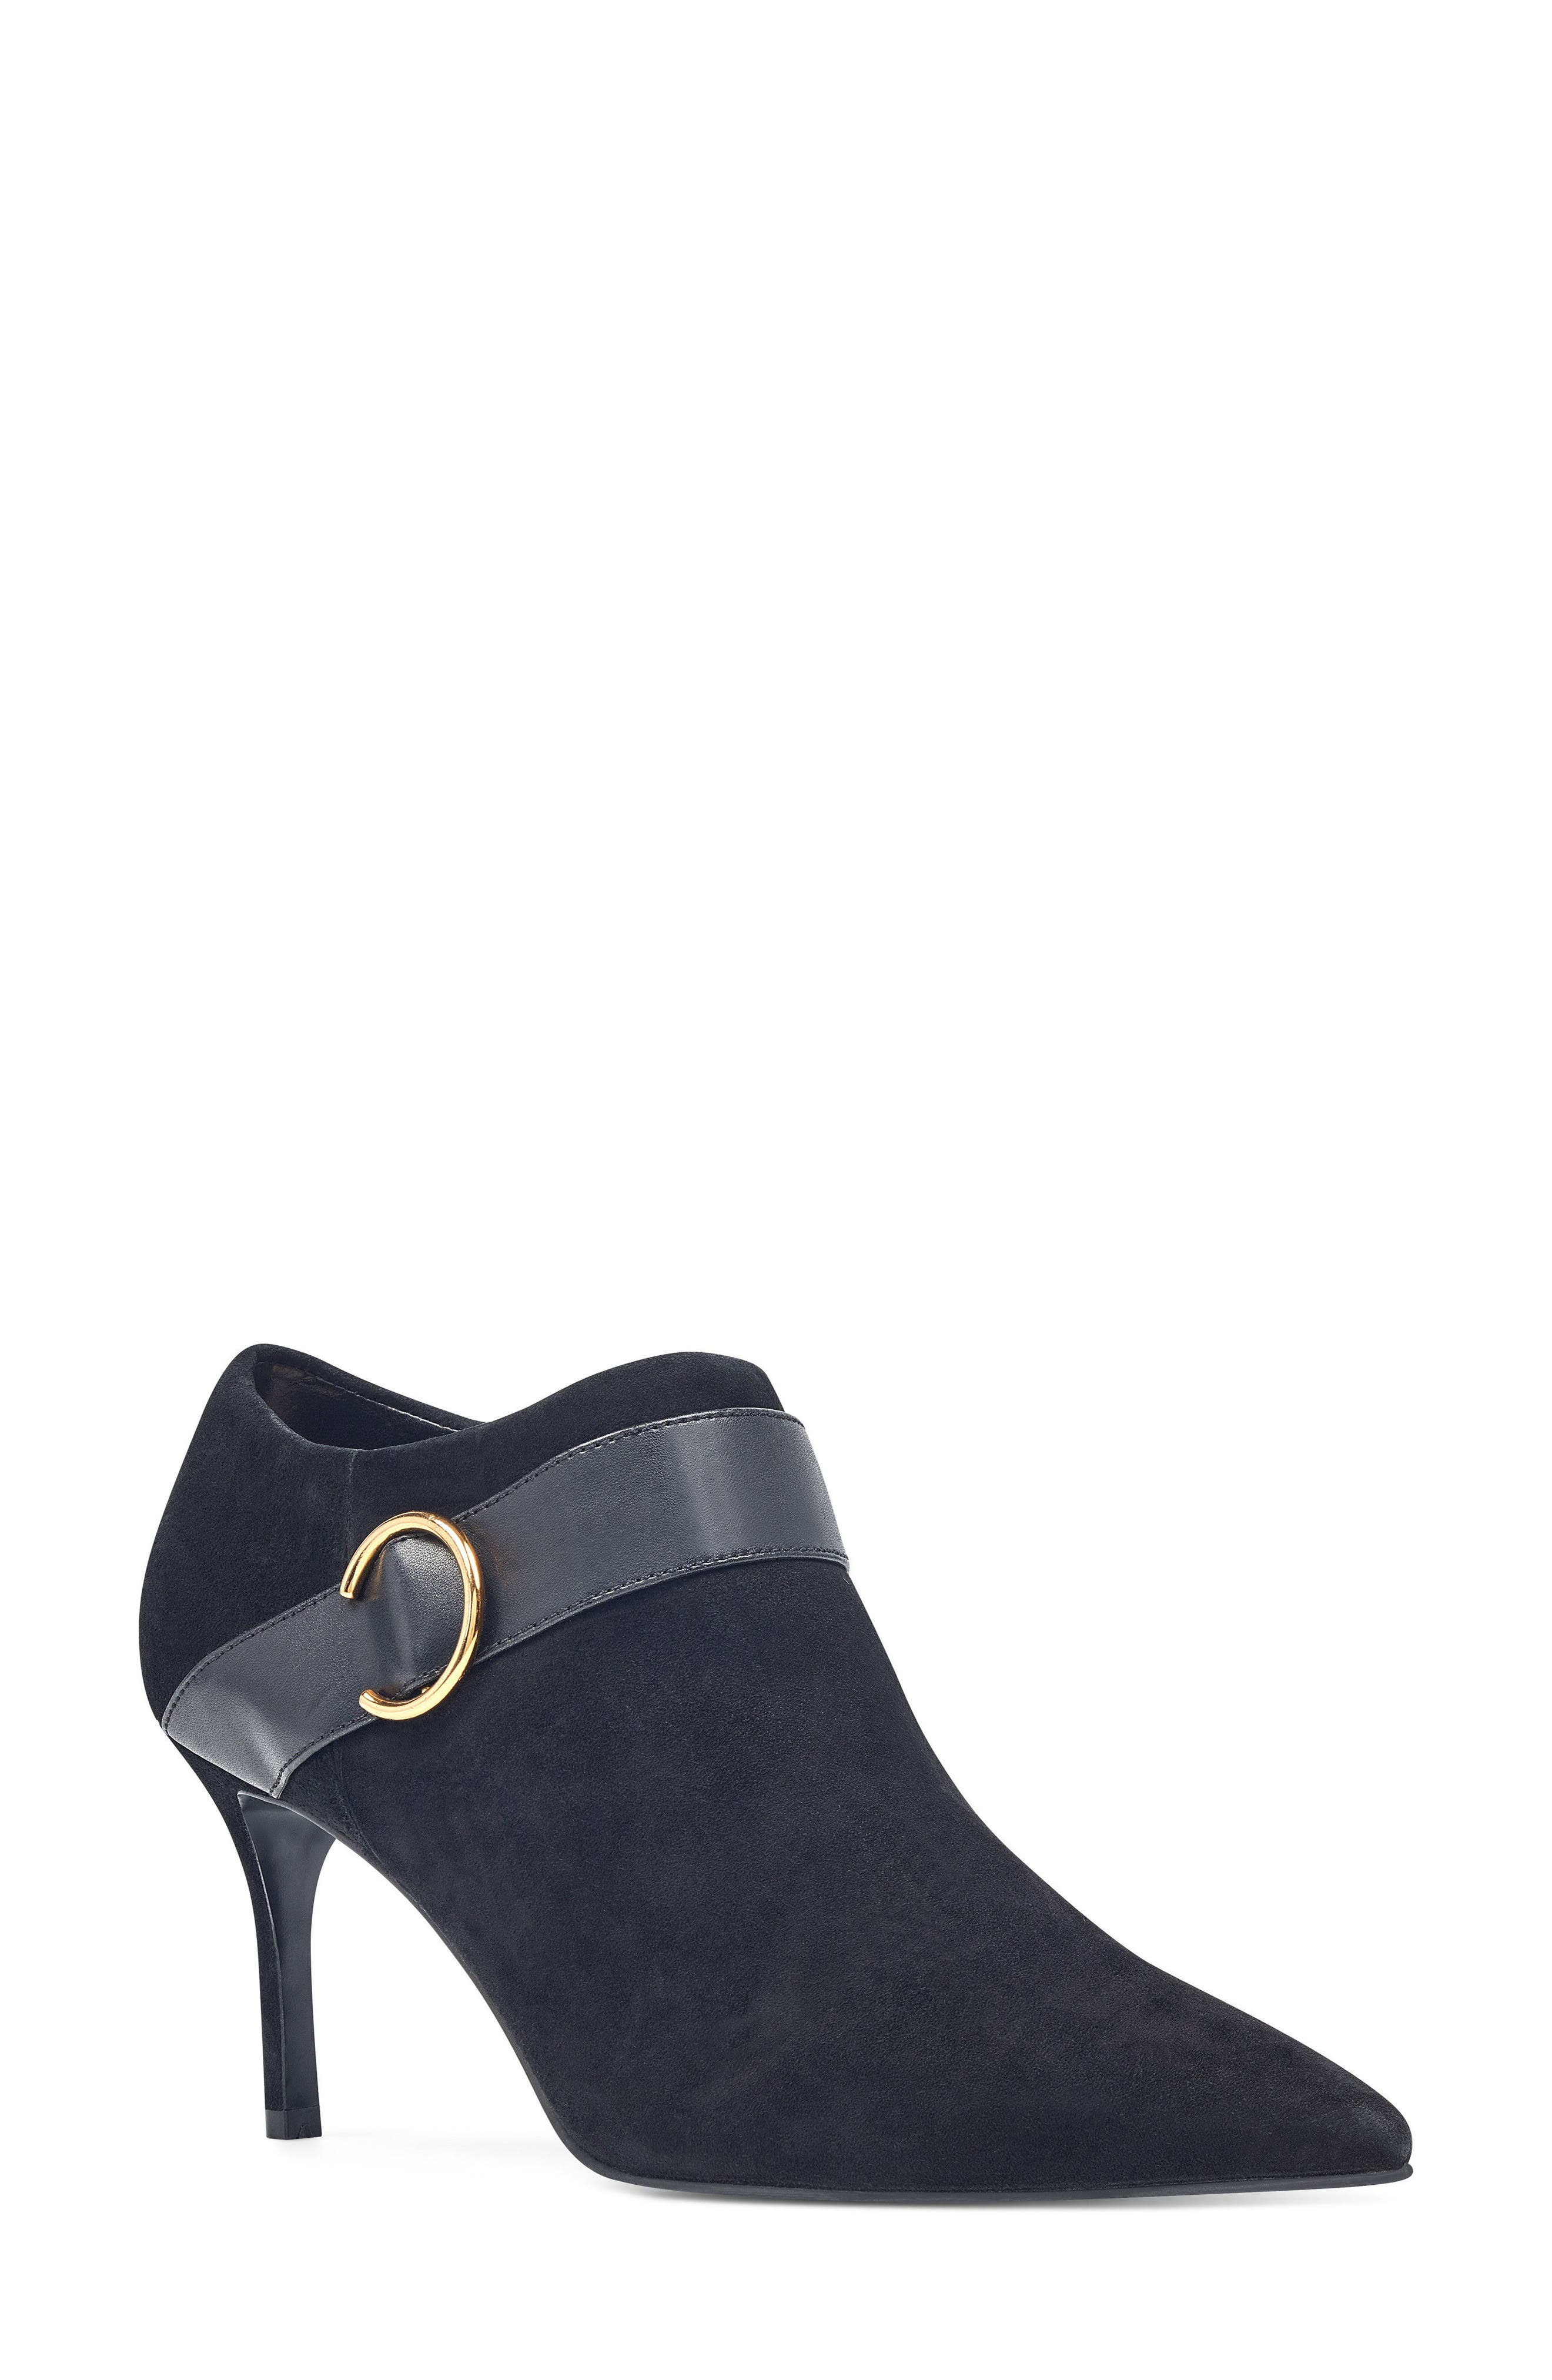 Megaera Pointy Toe Bootie,                         Main,                         color, 001